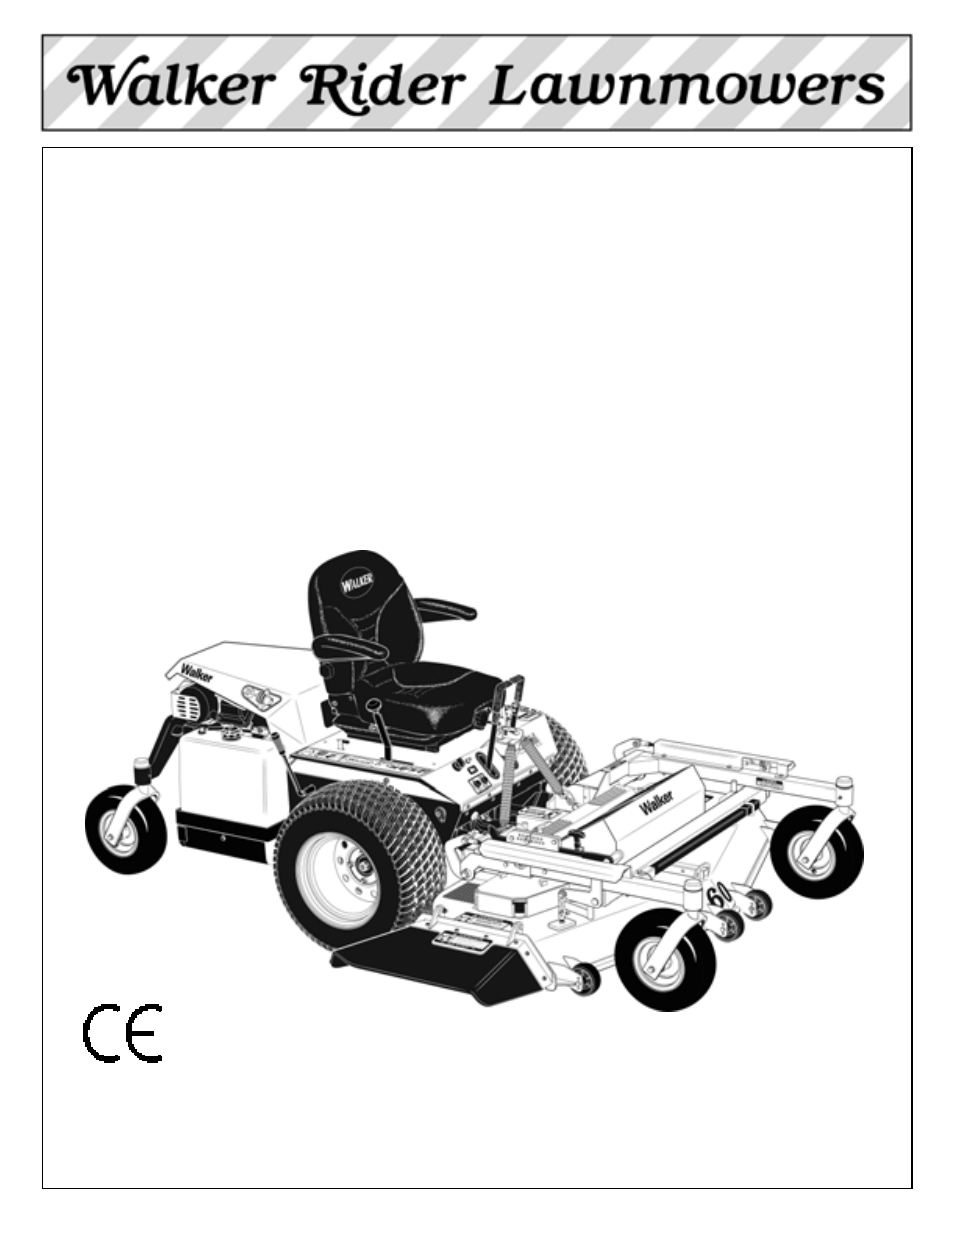 Walker MBSSD 27 HP User Manual 84 pages